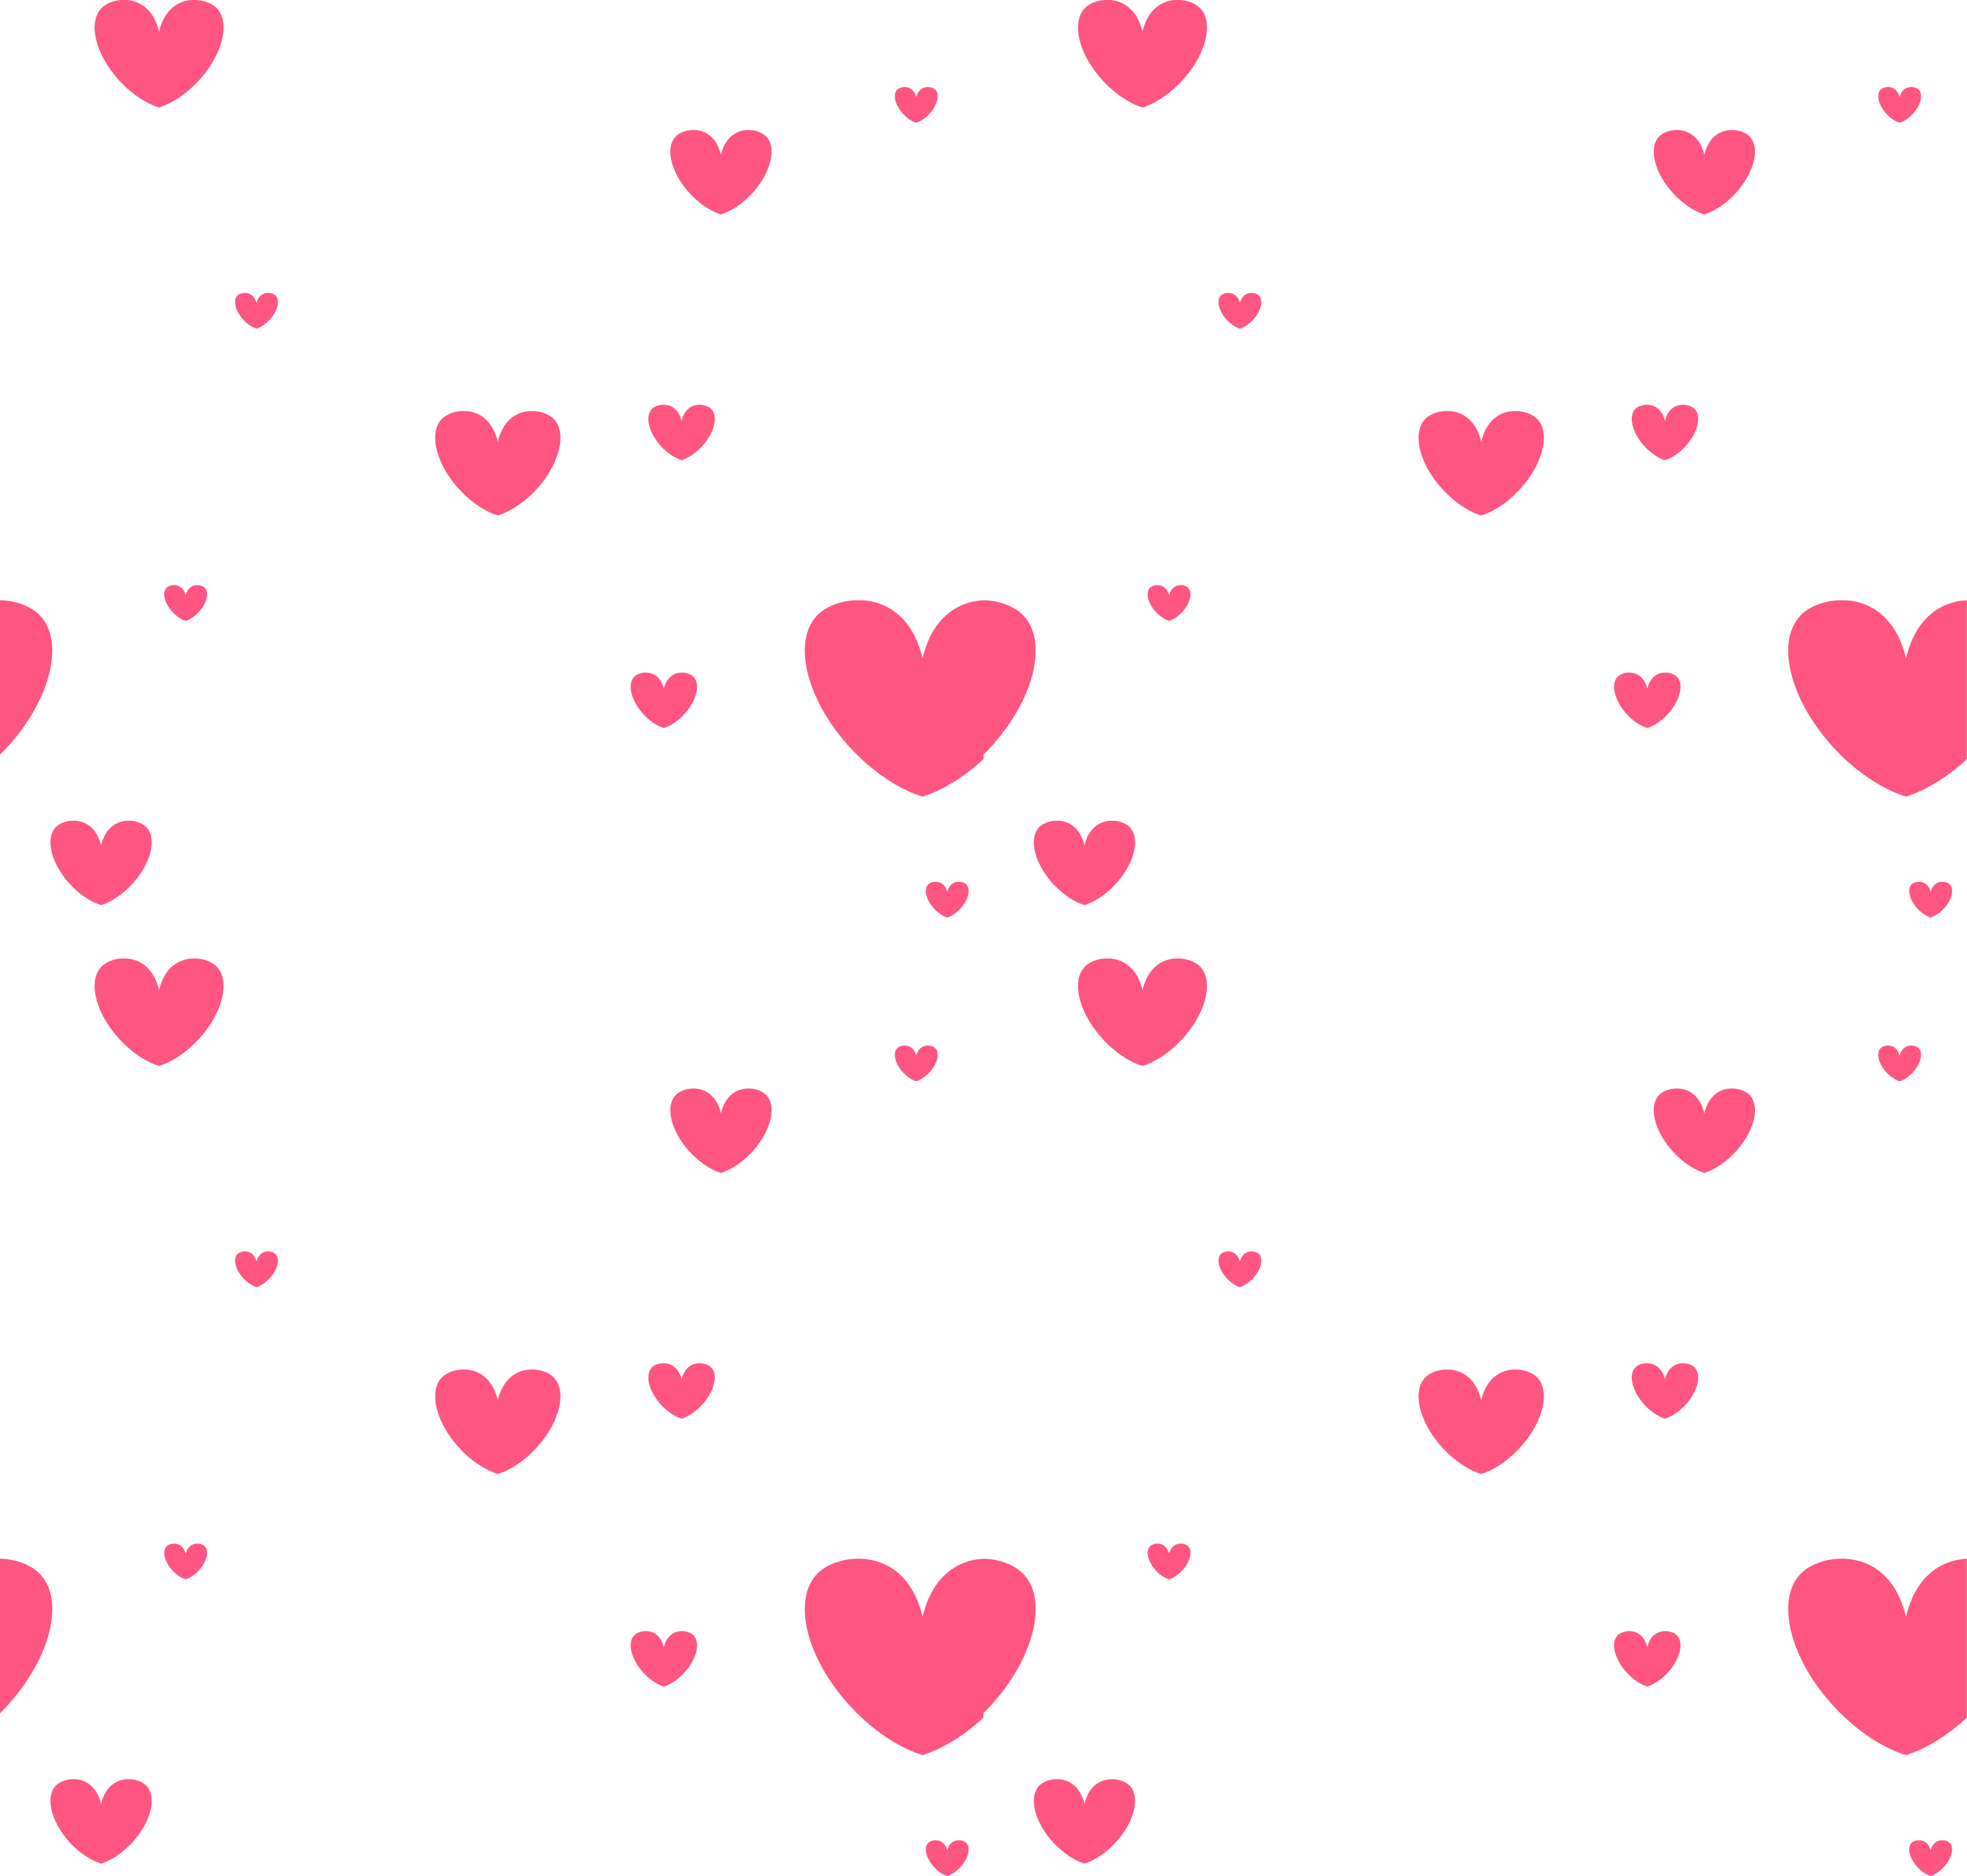 Heart download transprent free. Floating hearts png